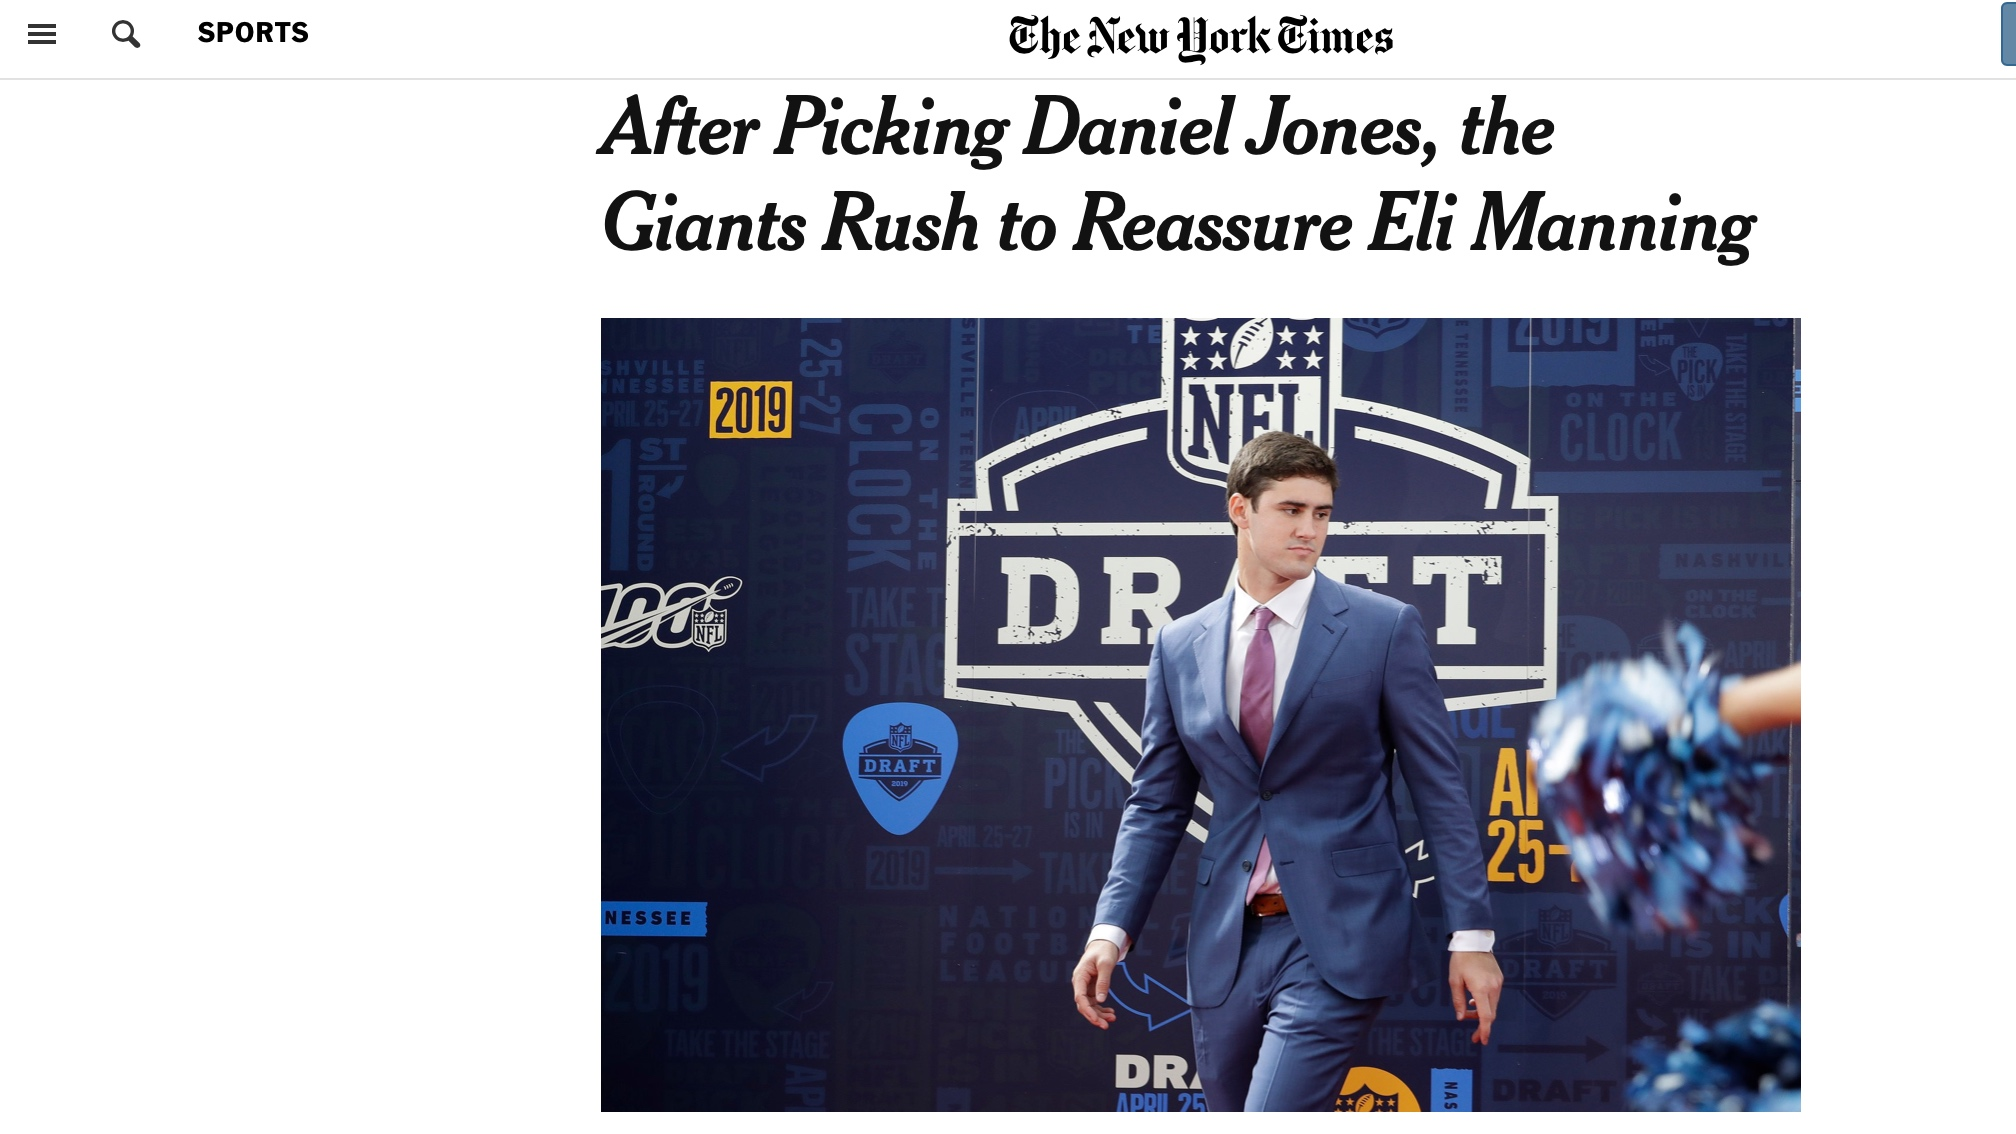 New York Times , April 26, 2019   After Picking Daniel Jones, the Giants Rush to Reassure Eli Manning